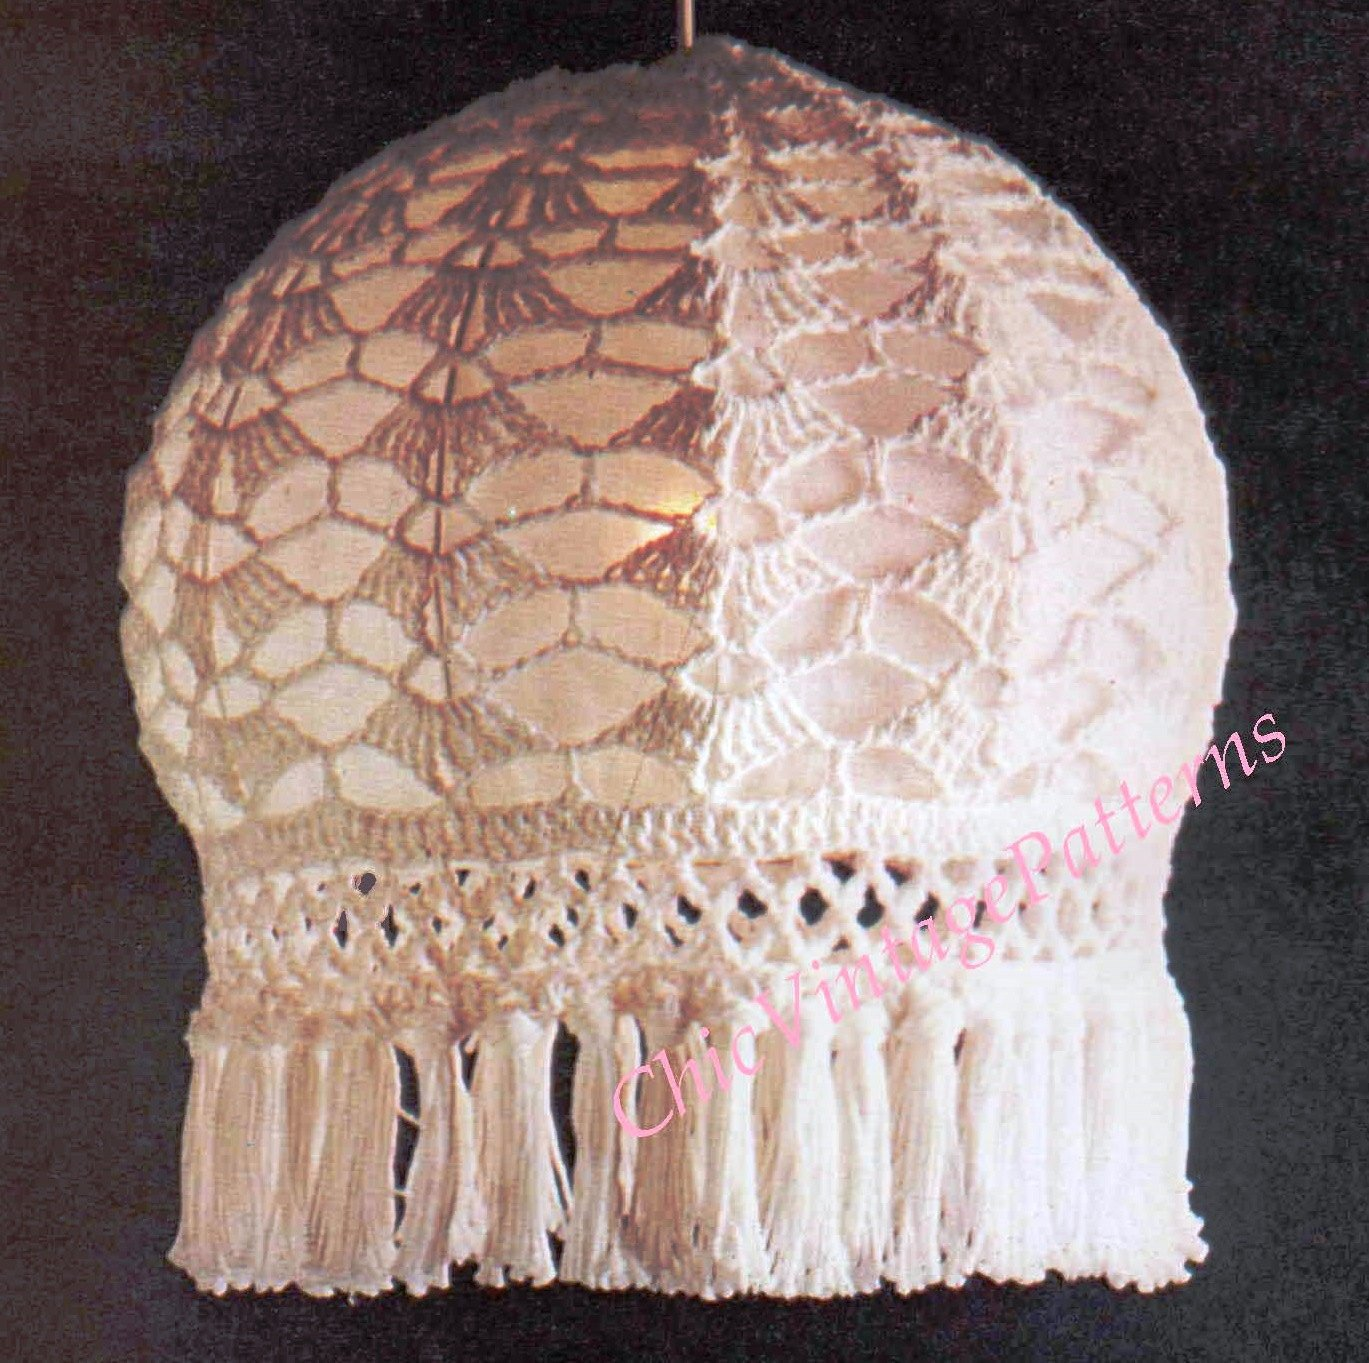 How To Make A Crochet Lampshade, Instant Download Pattern